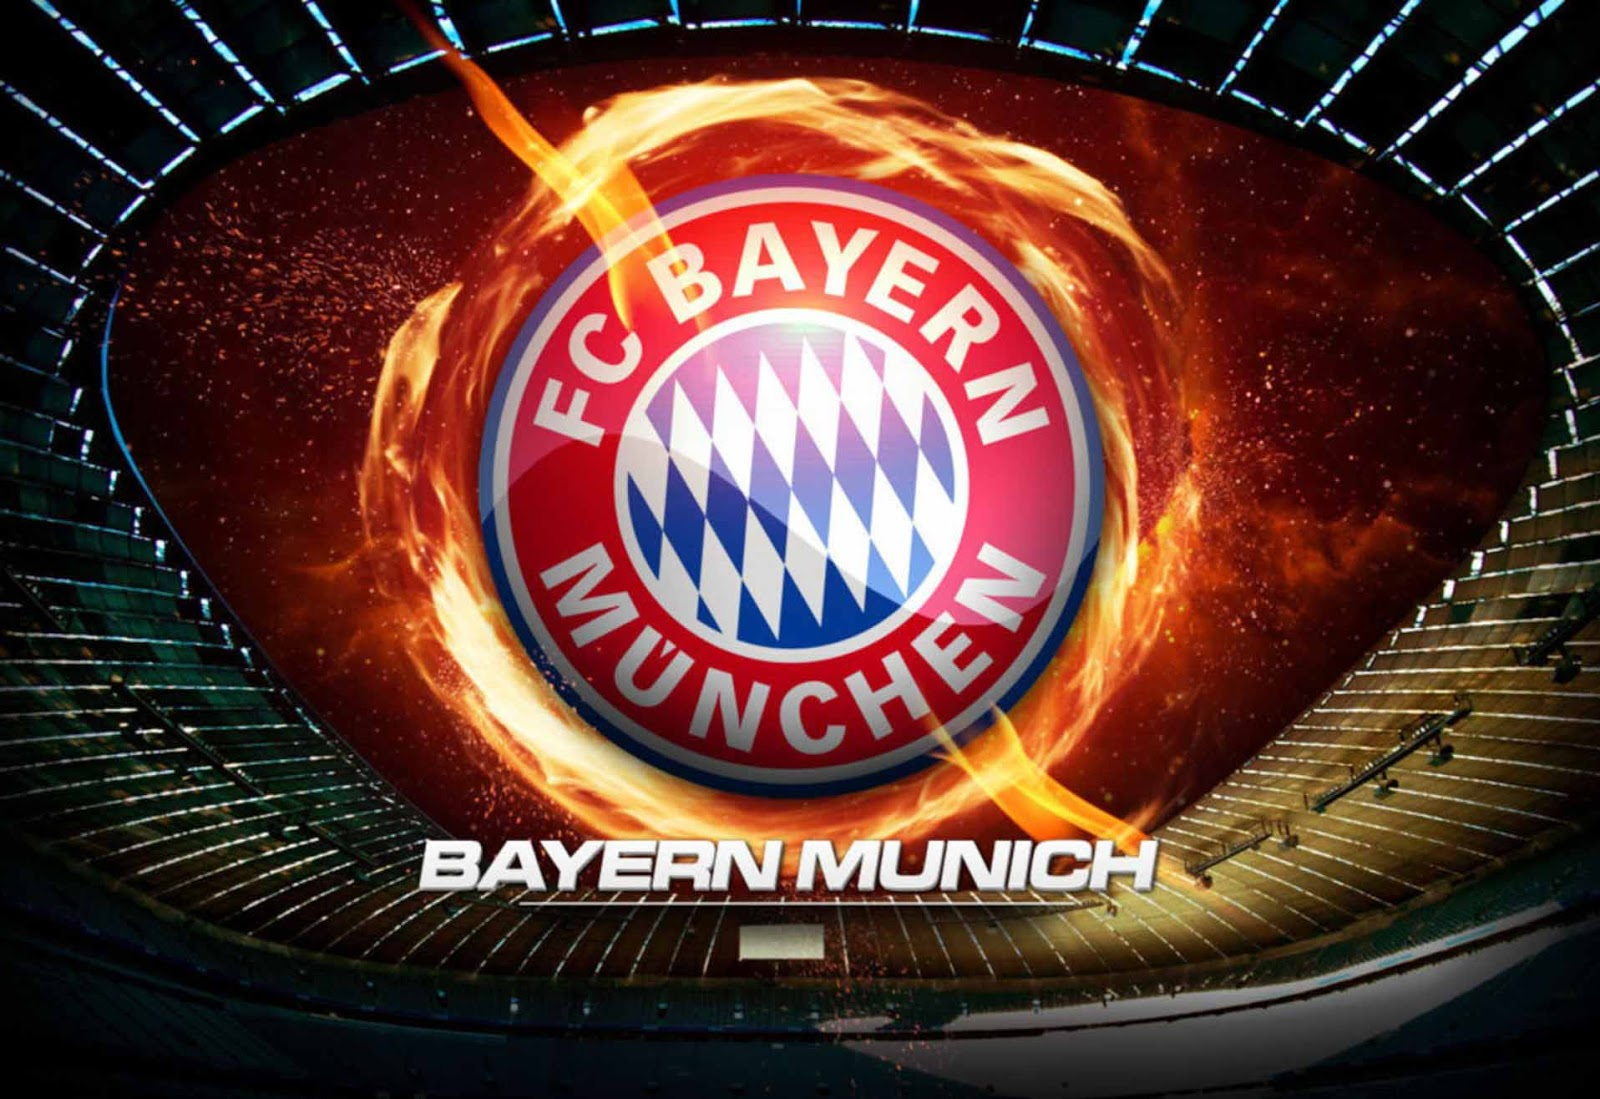 Wallpaper fc bayern munchen wallpapersforfree gambar logo bayern munich keren voltagebd Images